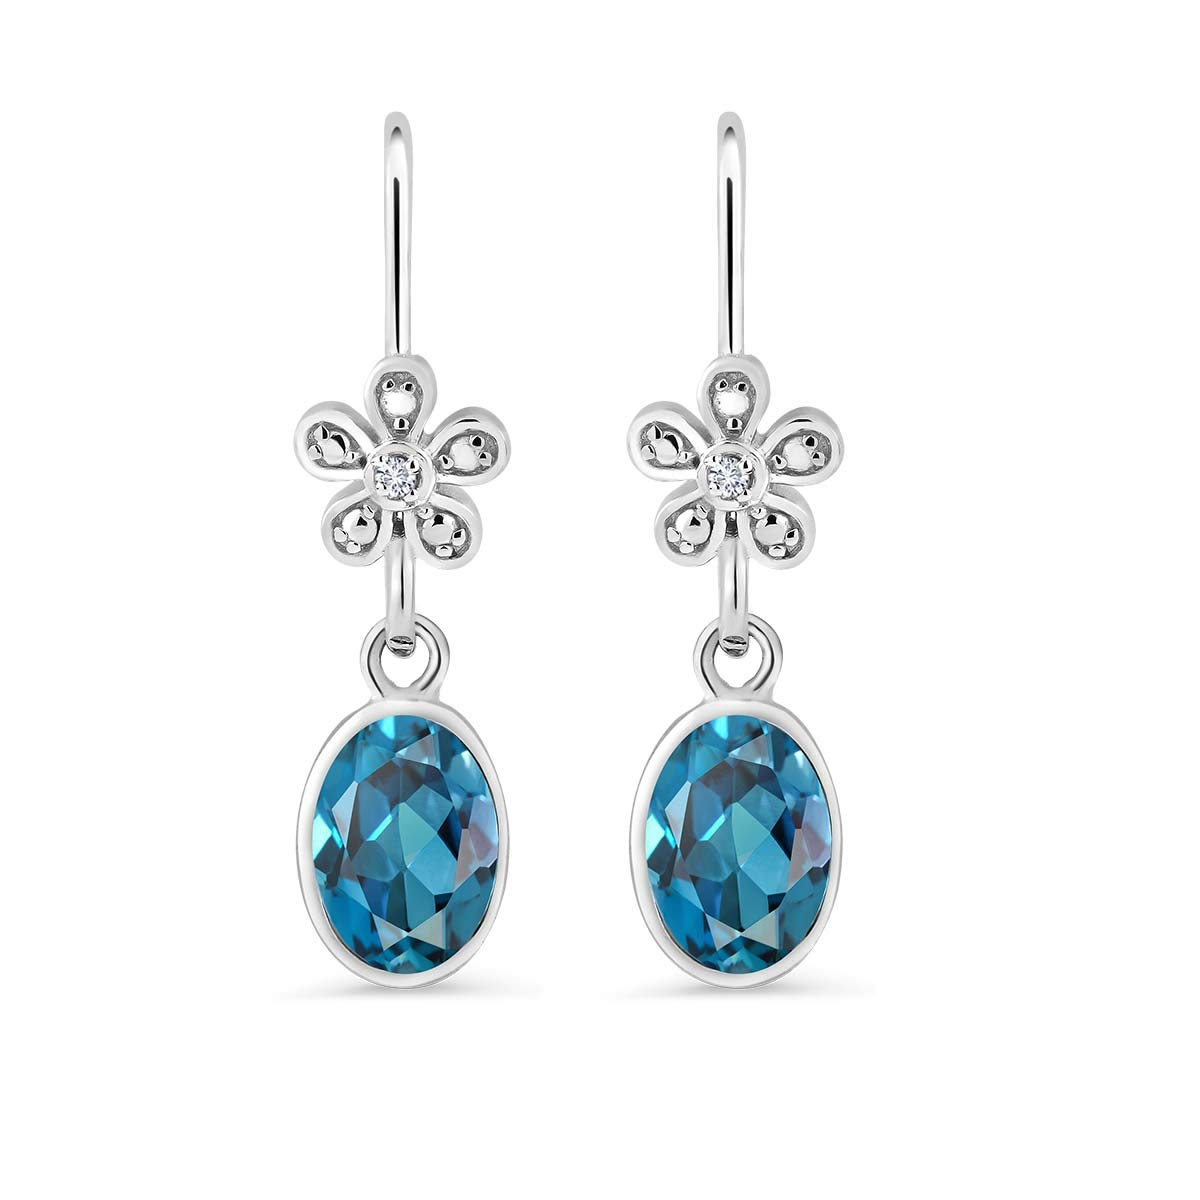 1824b7c95 Amazon.com: Sterling Silver London Blue Topaz Women's Dangle Earrings With  Accent Diamond (3.00 cttw): Jewelry